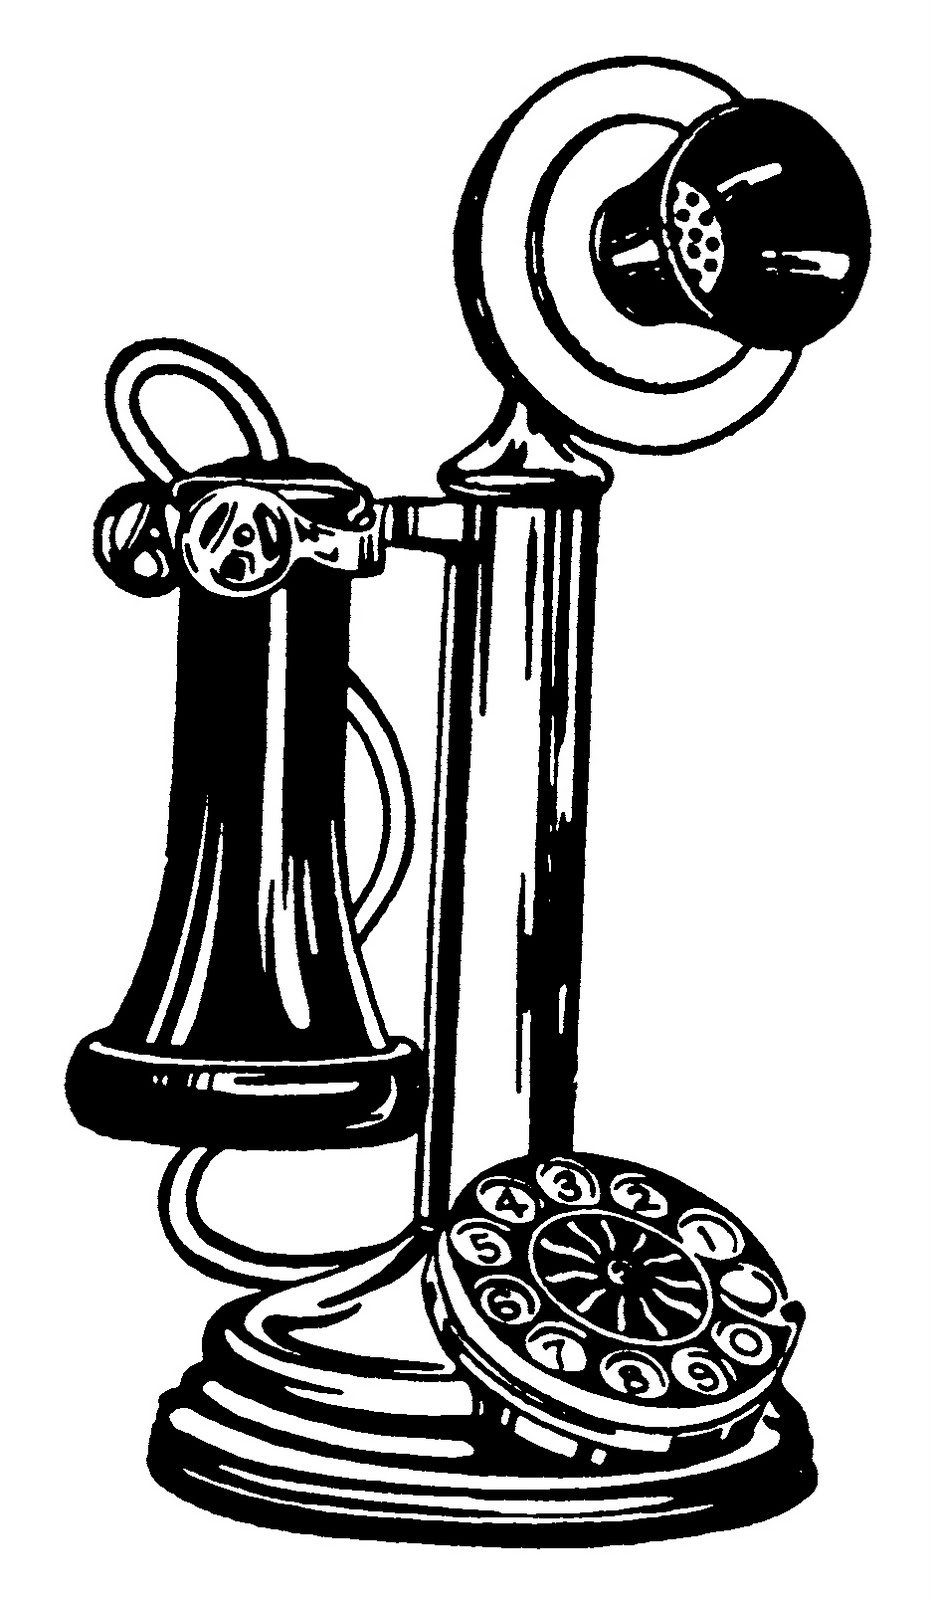 vintage telephone clipart - photo #3